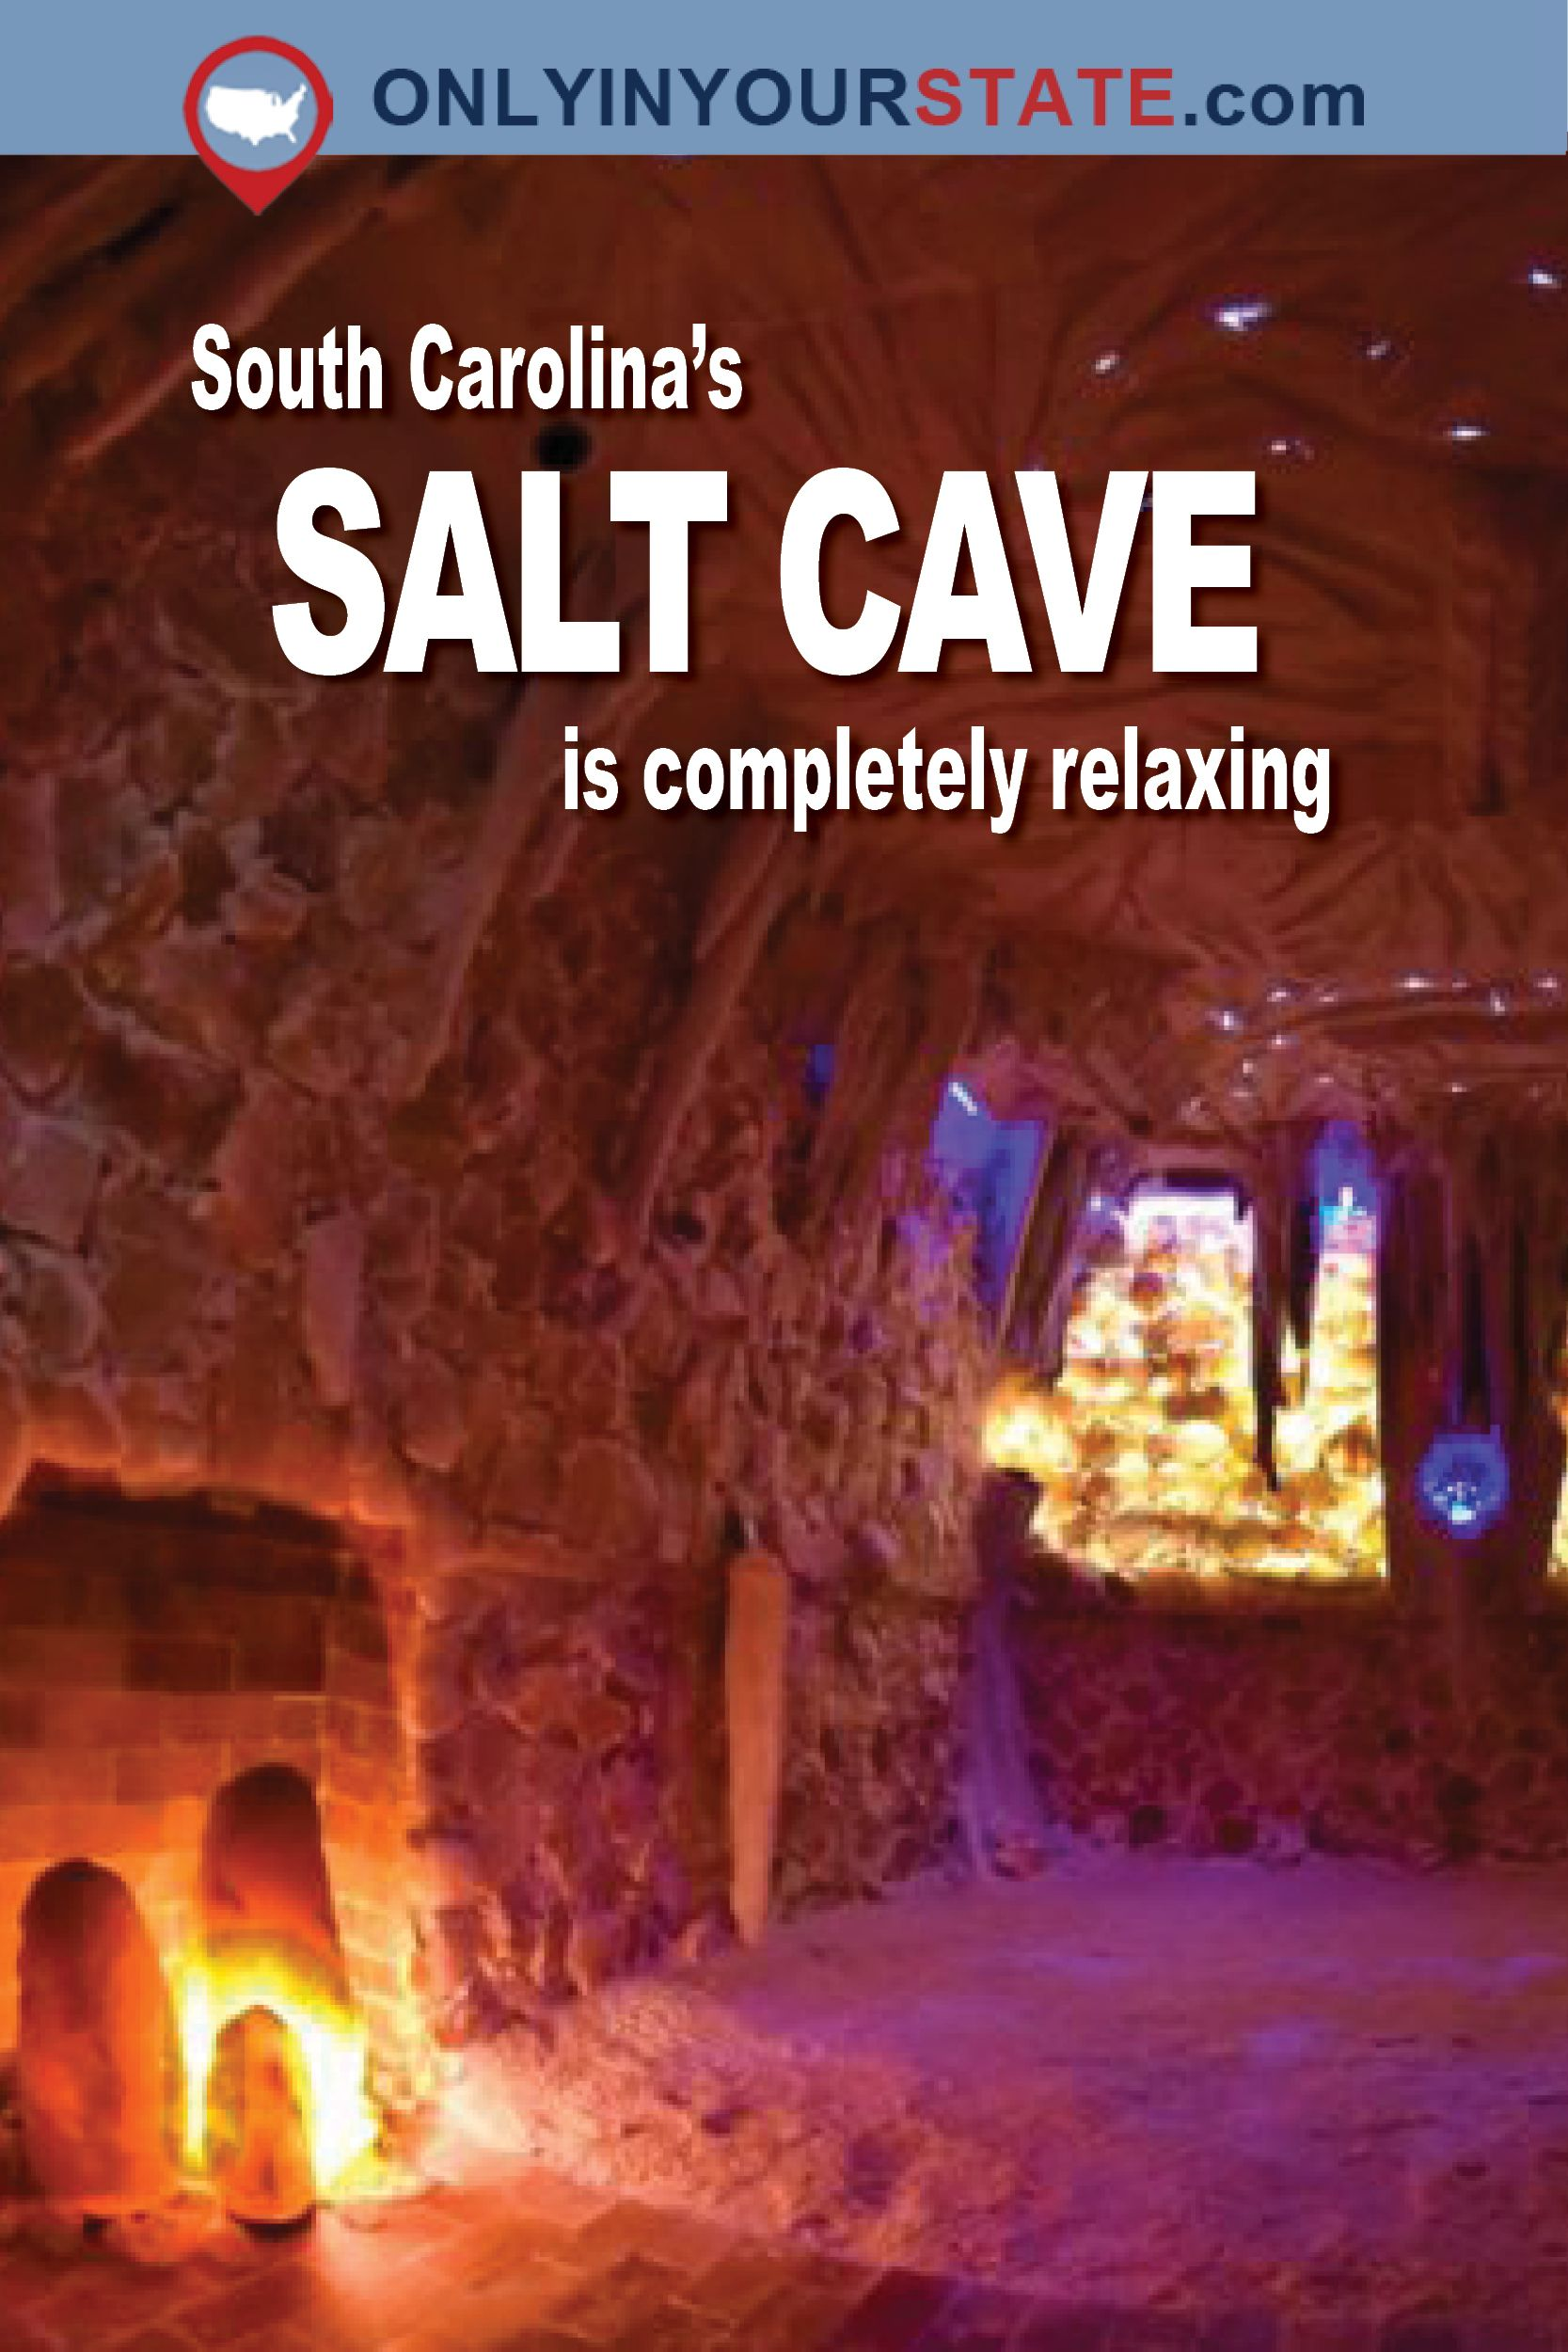 The Incredible Salt Cave In South Carolina That Completely